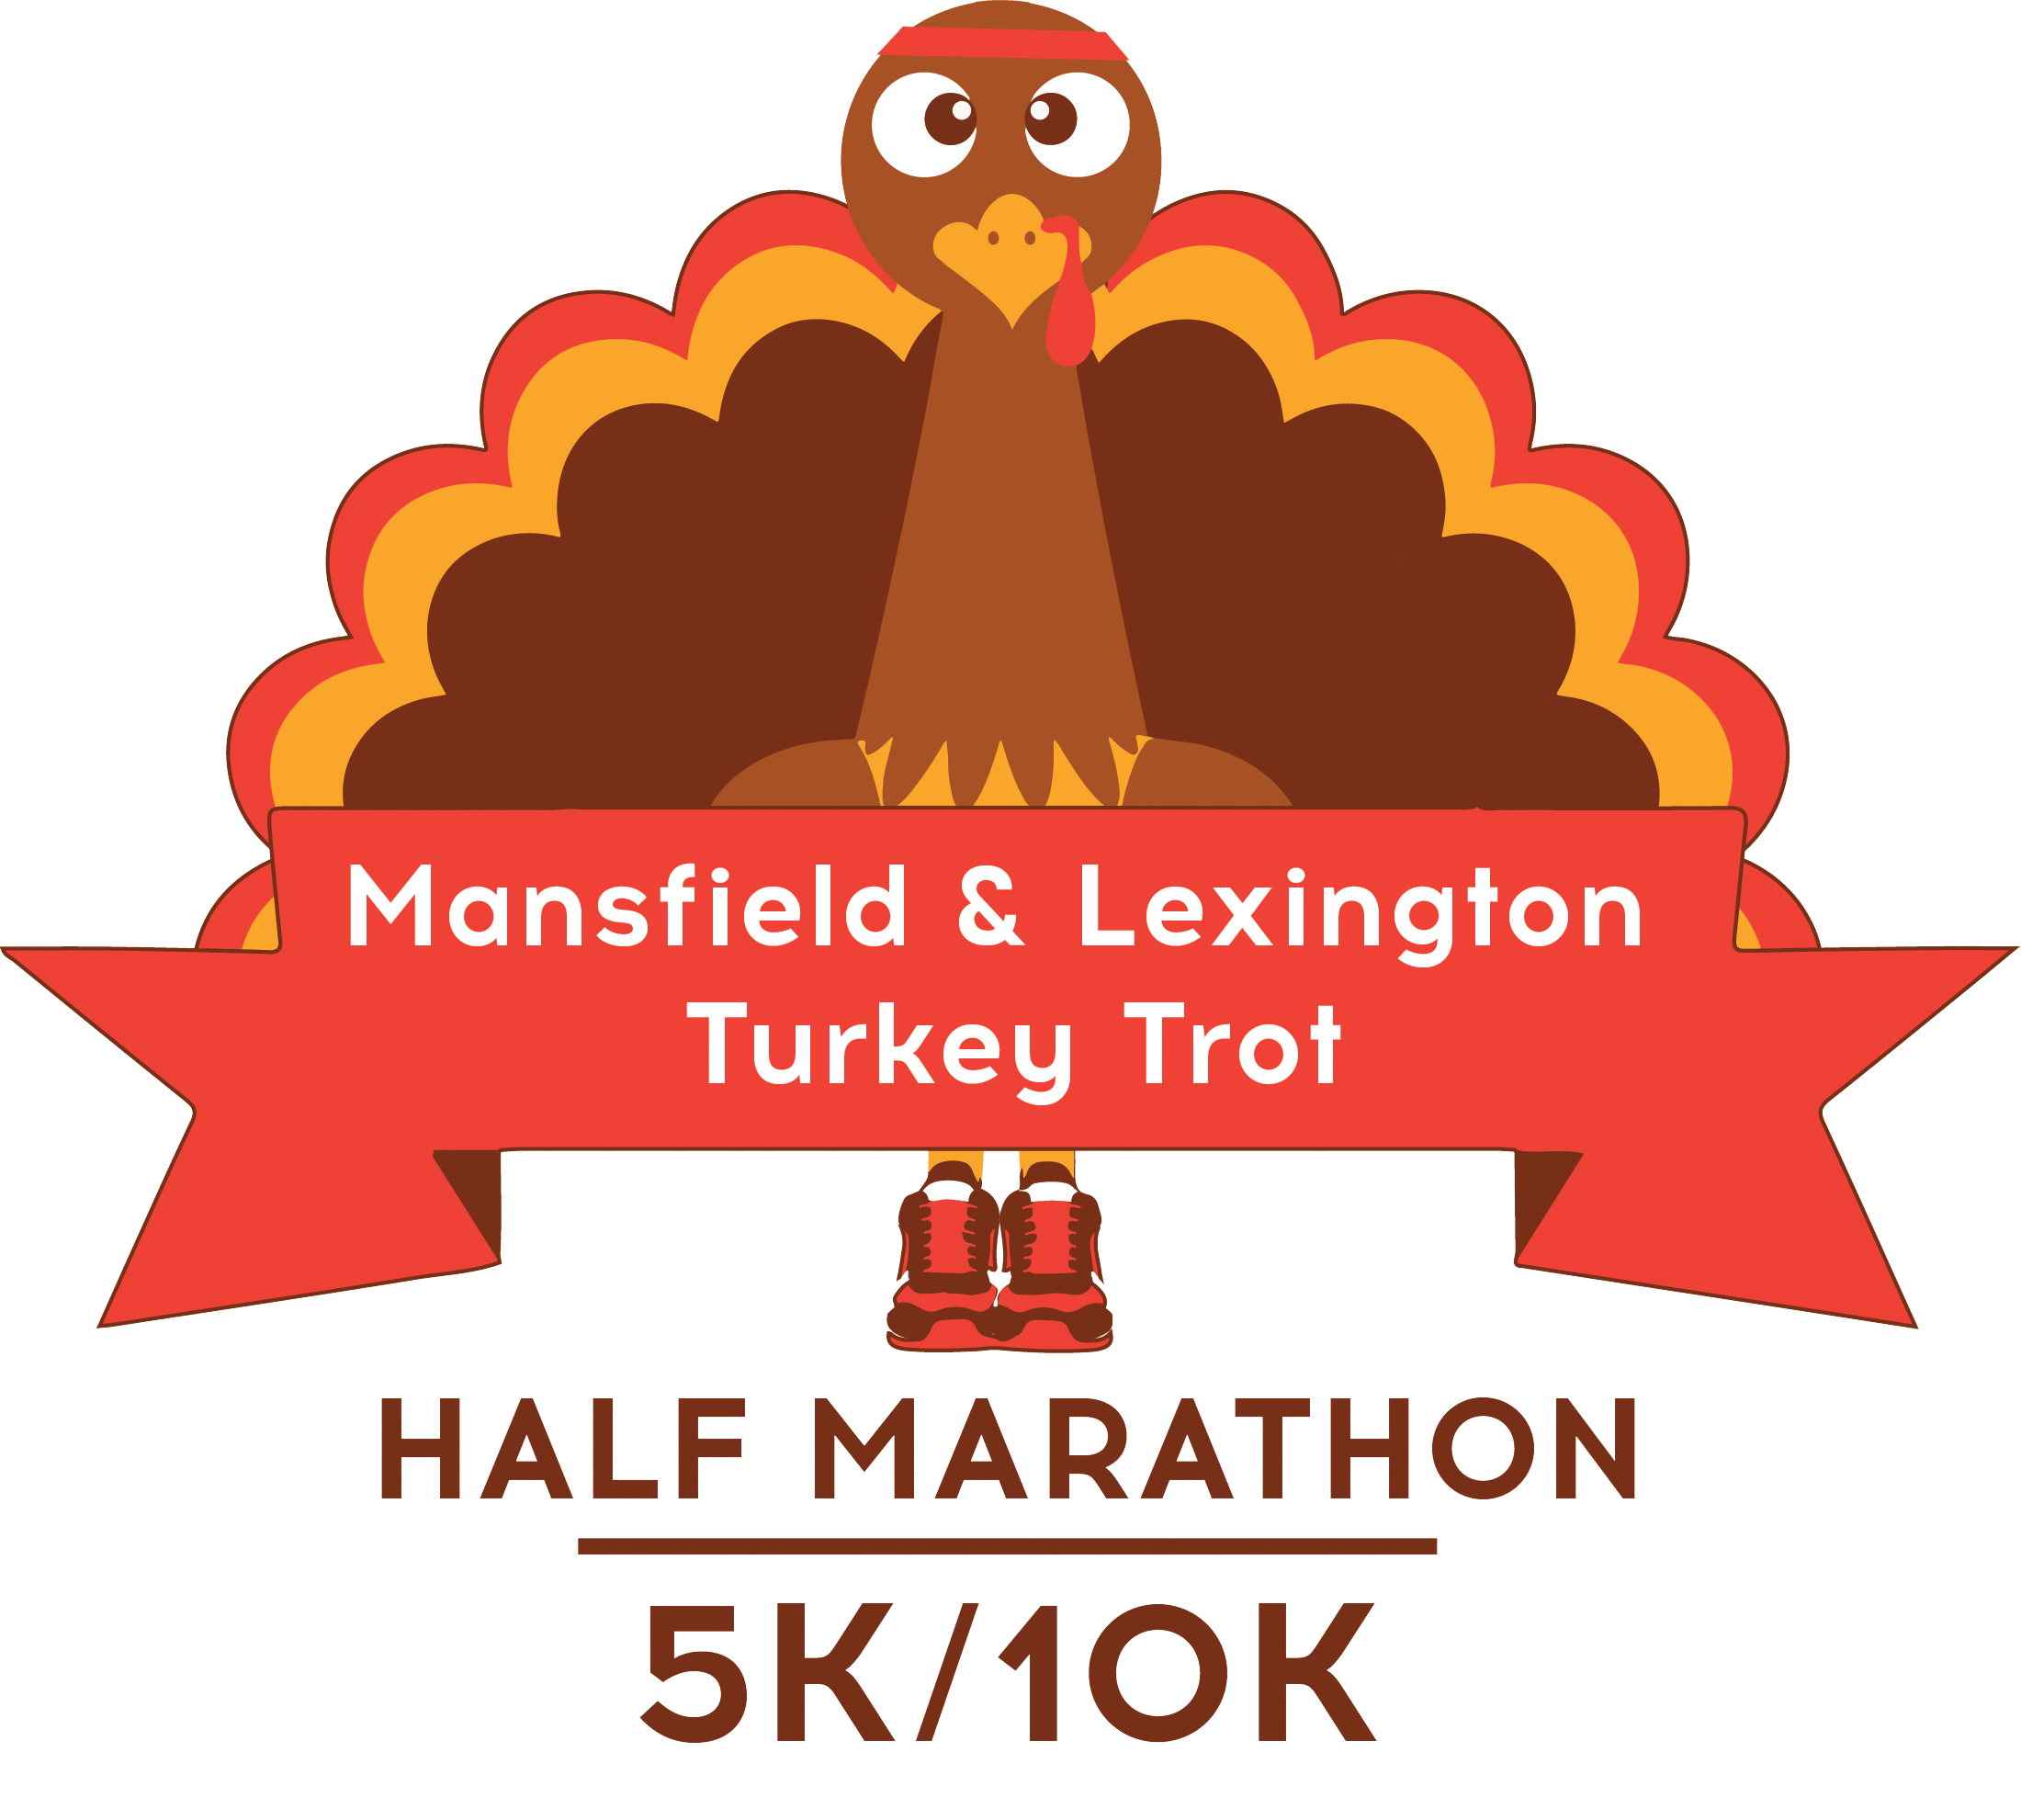 Mansfield & Lexington Turkey Trot